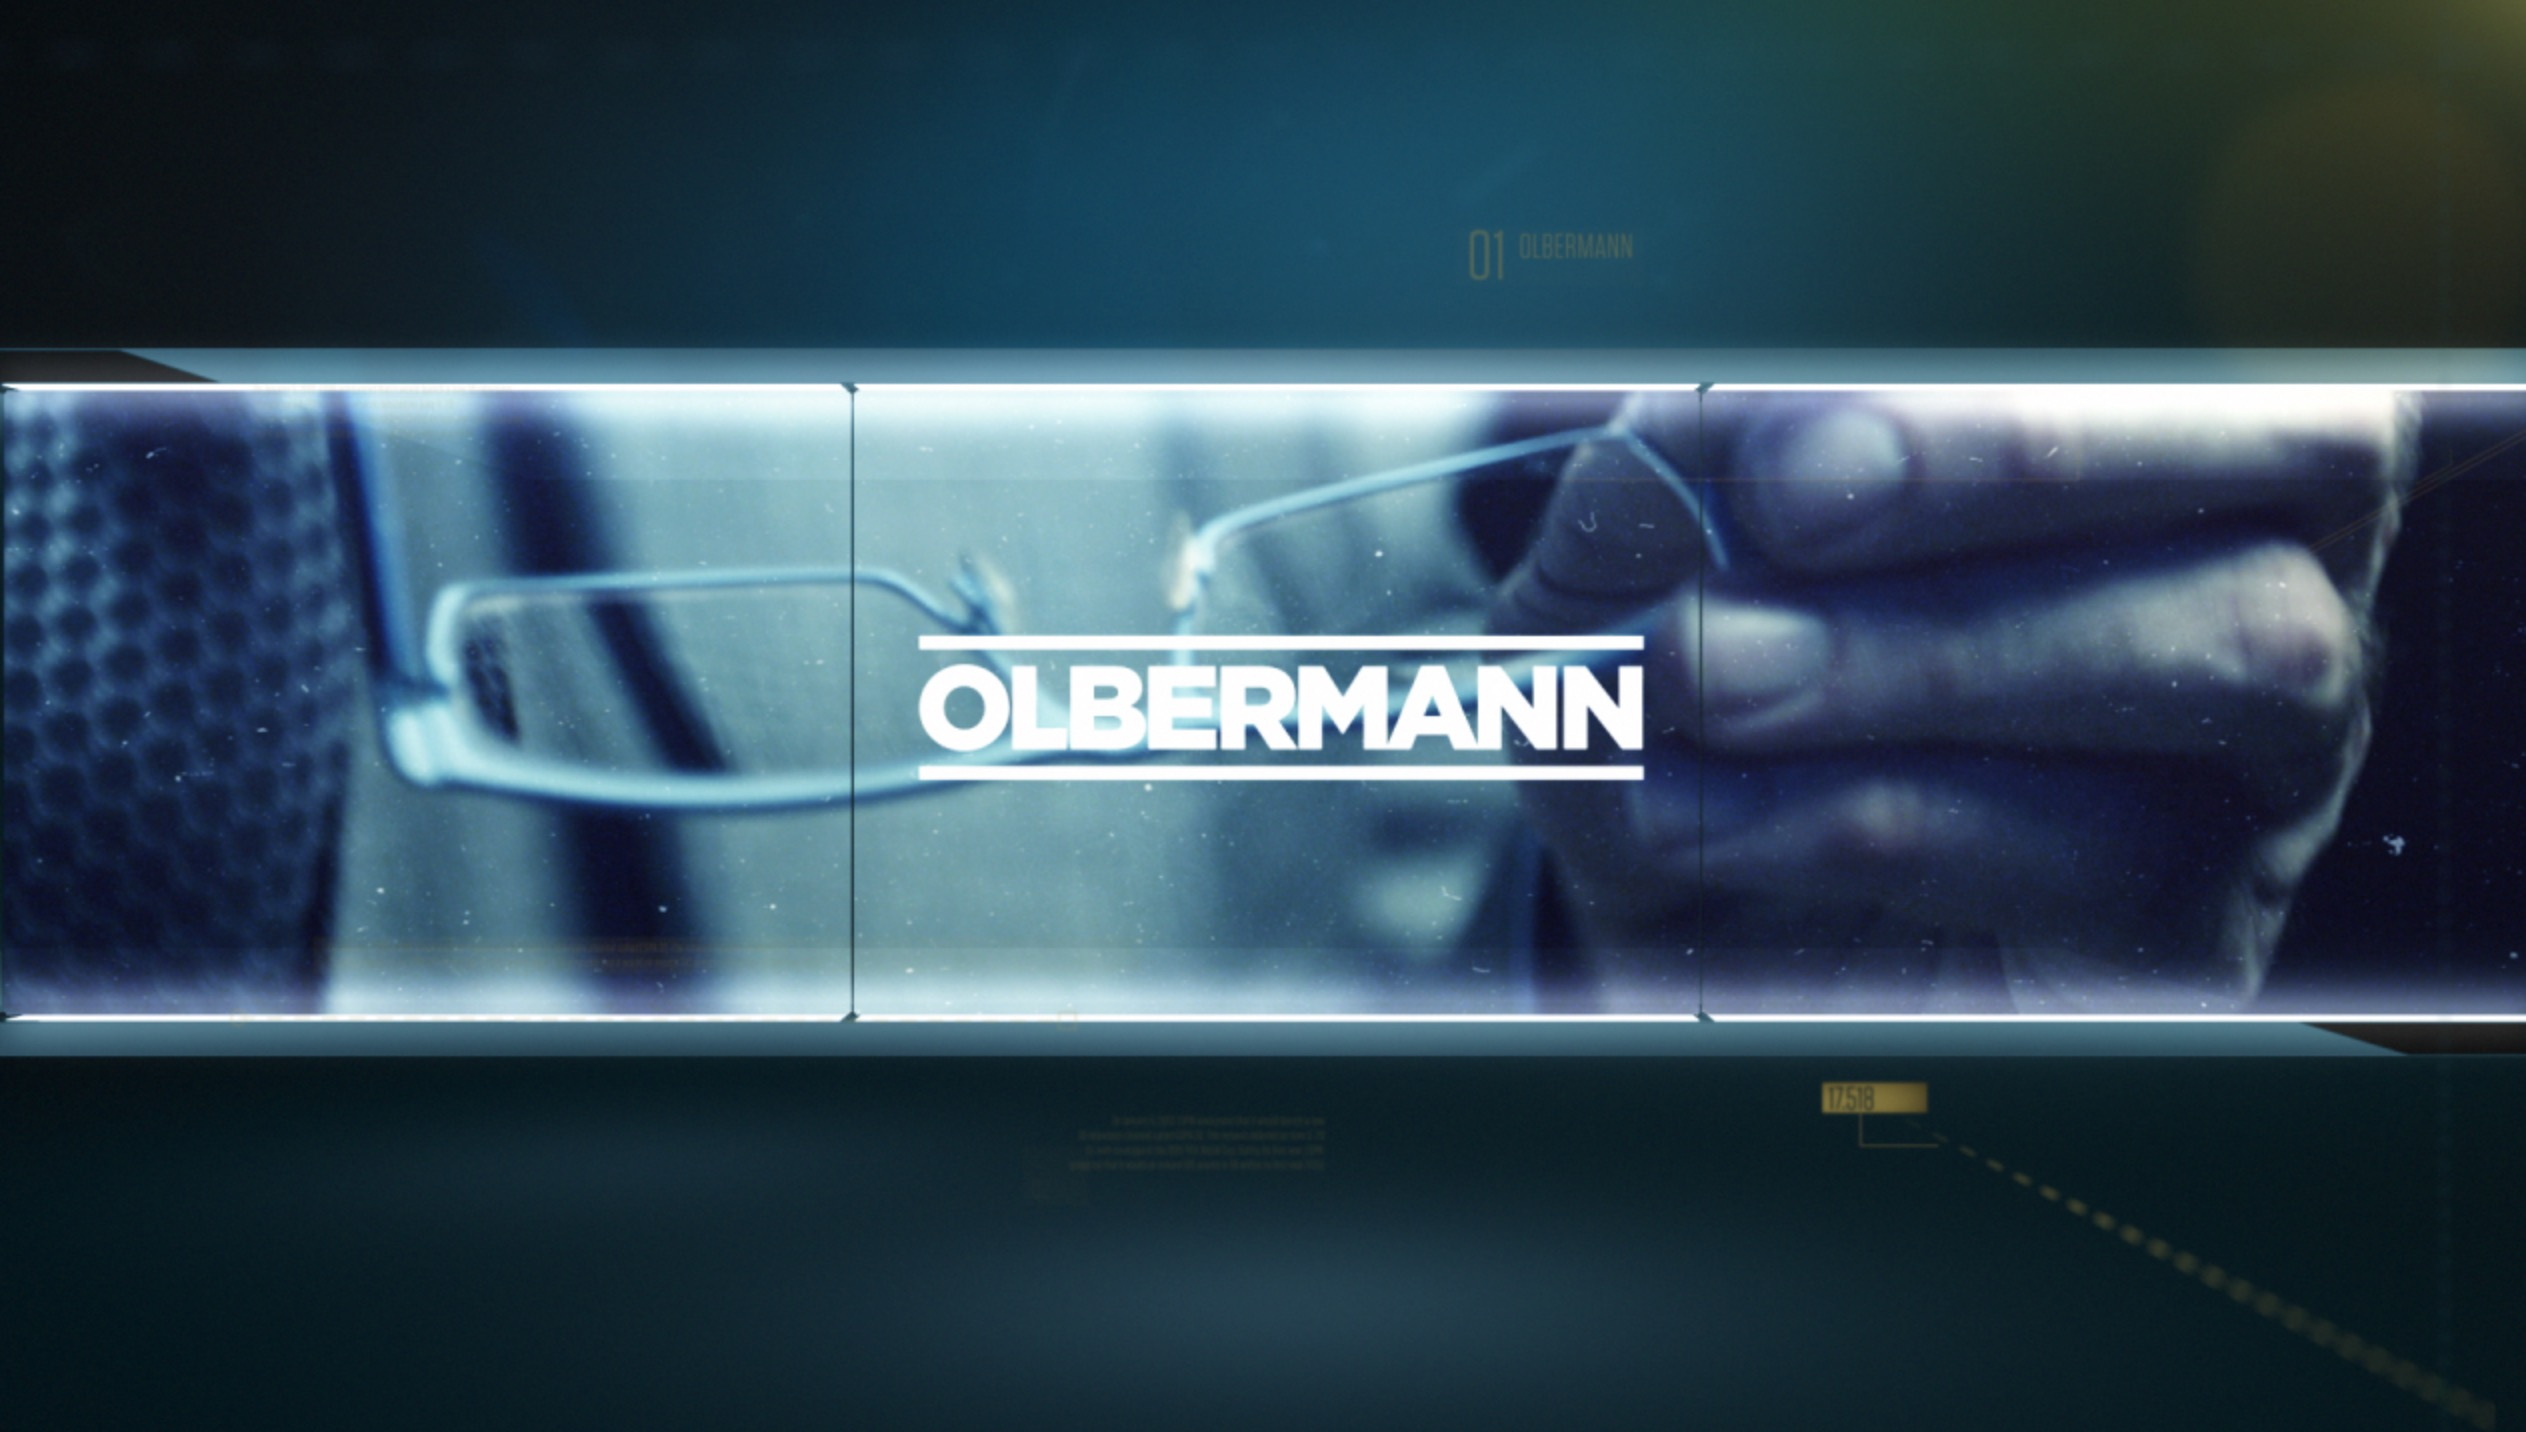 OLBERMANN – STILLS